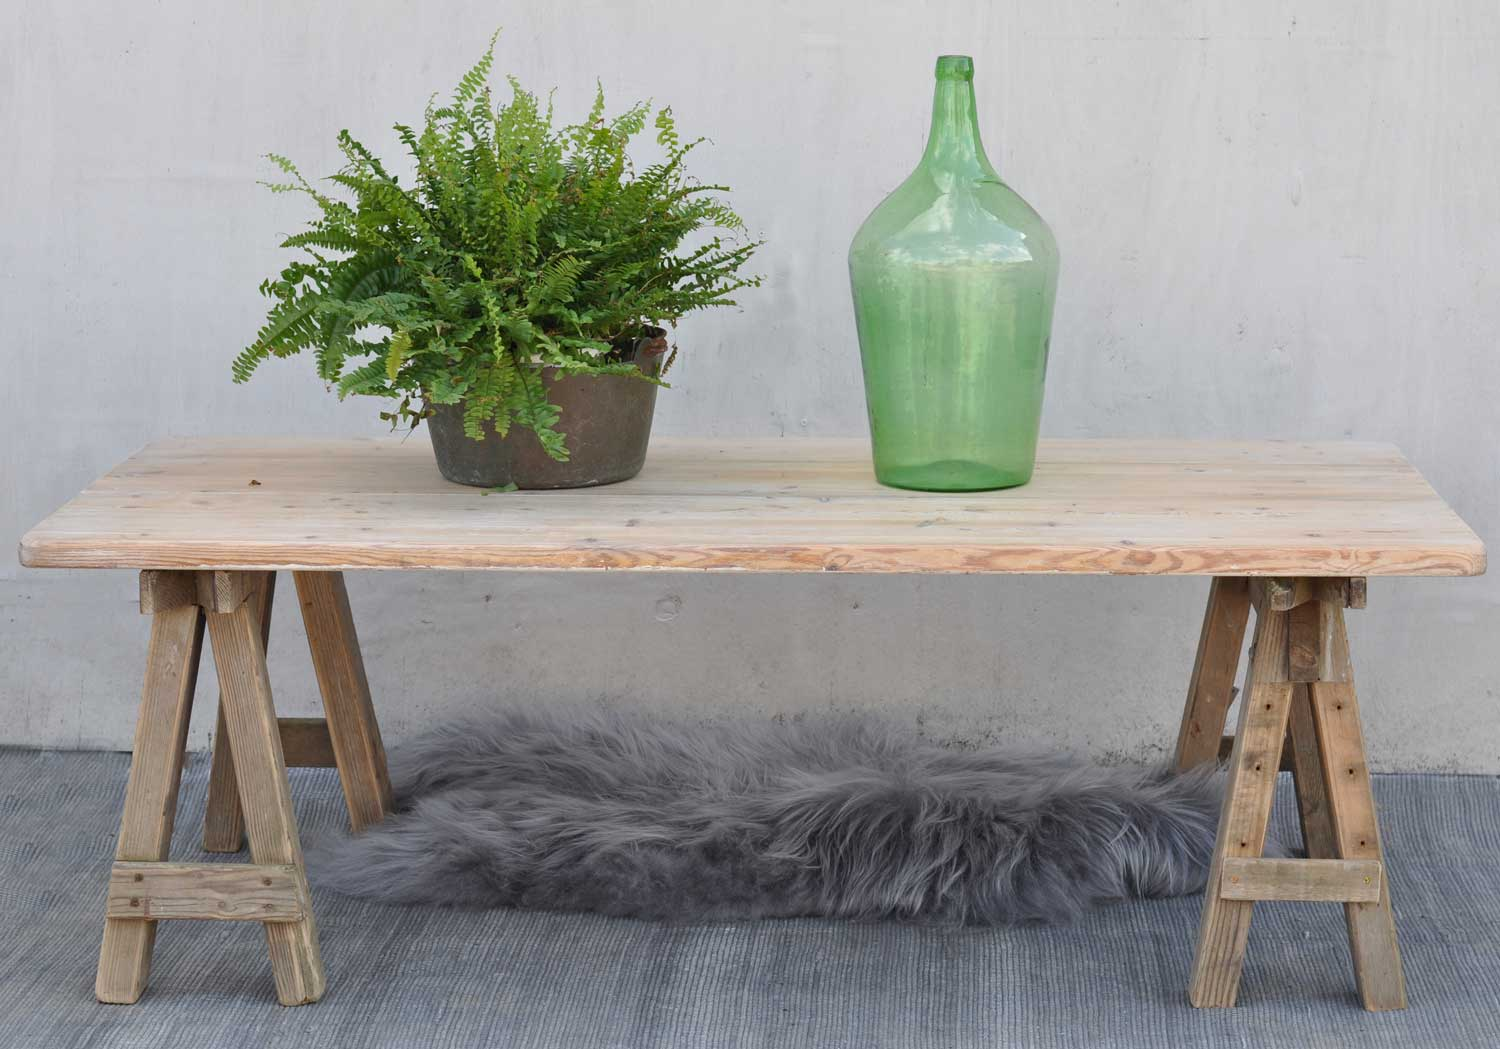 Reclaimed wood Carpenter's trestle leg coffee table with reclaimed top